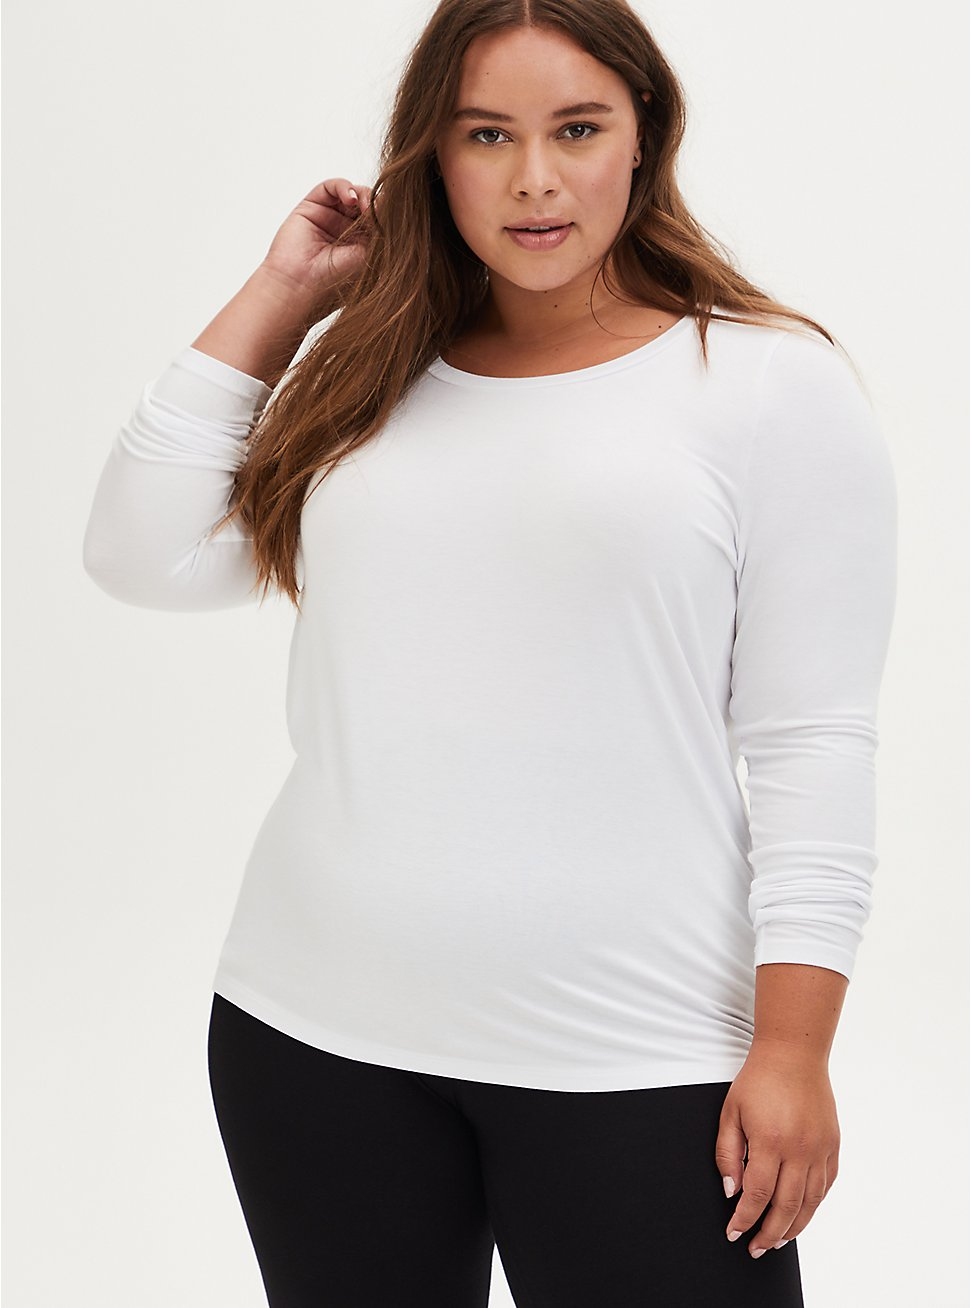 Long Sleeve Scoop Neck Tee - Super Soft White, BRIGHT WHITE, hi-res